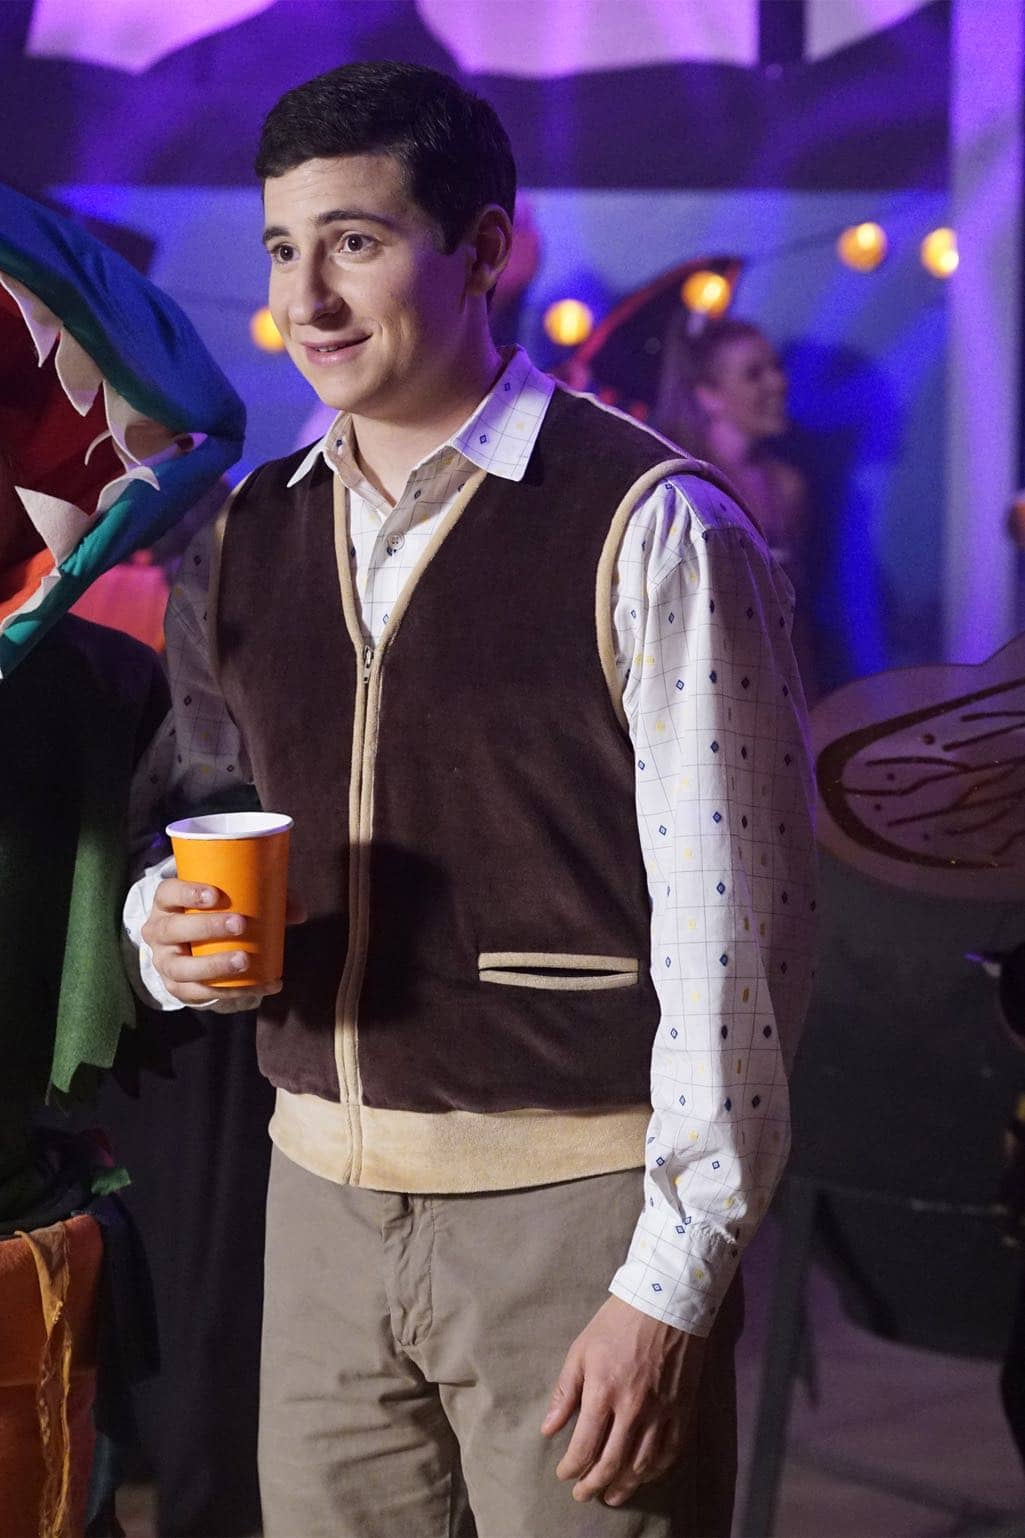 """THE GOLDBERGS - """"Stefan King"""" - Adam's love of Stephen King inspires him to try his hand at horror writing. After learning the monster in Adam's story is based off Beverly, she forces Adam to stay in on Halloween and rewrite it, hoping he depicts her as a better mother. Meanwhile, Erica is desperate to find a date to the costume dance and forces Barry go with her, on """"The Goldbergs,"""" WEDNESDAY, OCTOBER 26 (8:00-8:30 p.m. EDT), on the ABC Television Network. (ABC/Kelsey McNeal) SAM LERNER"""